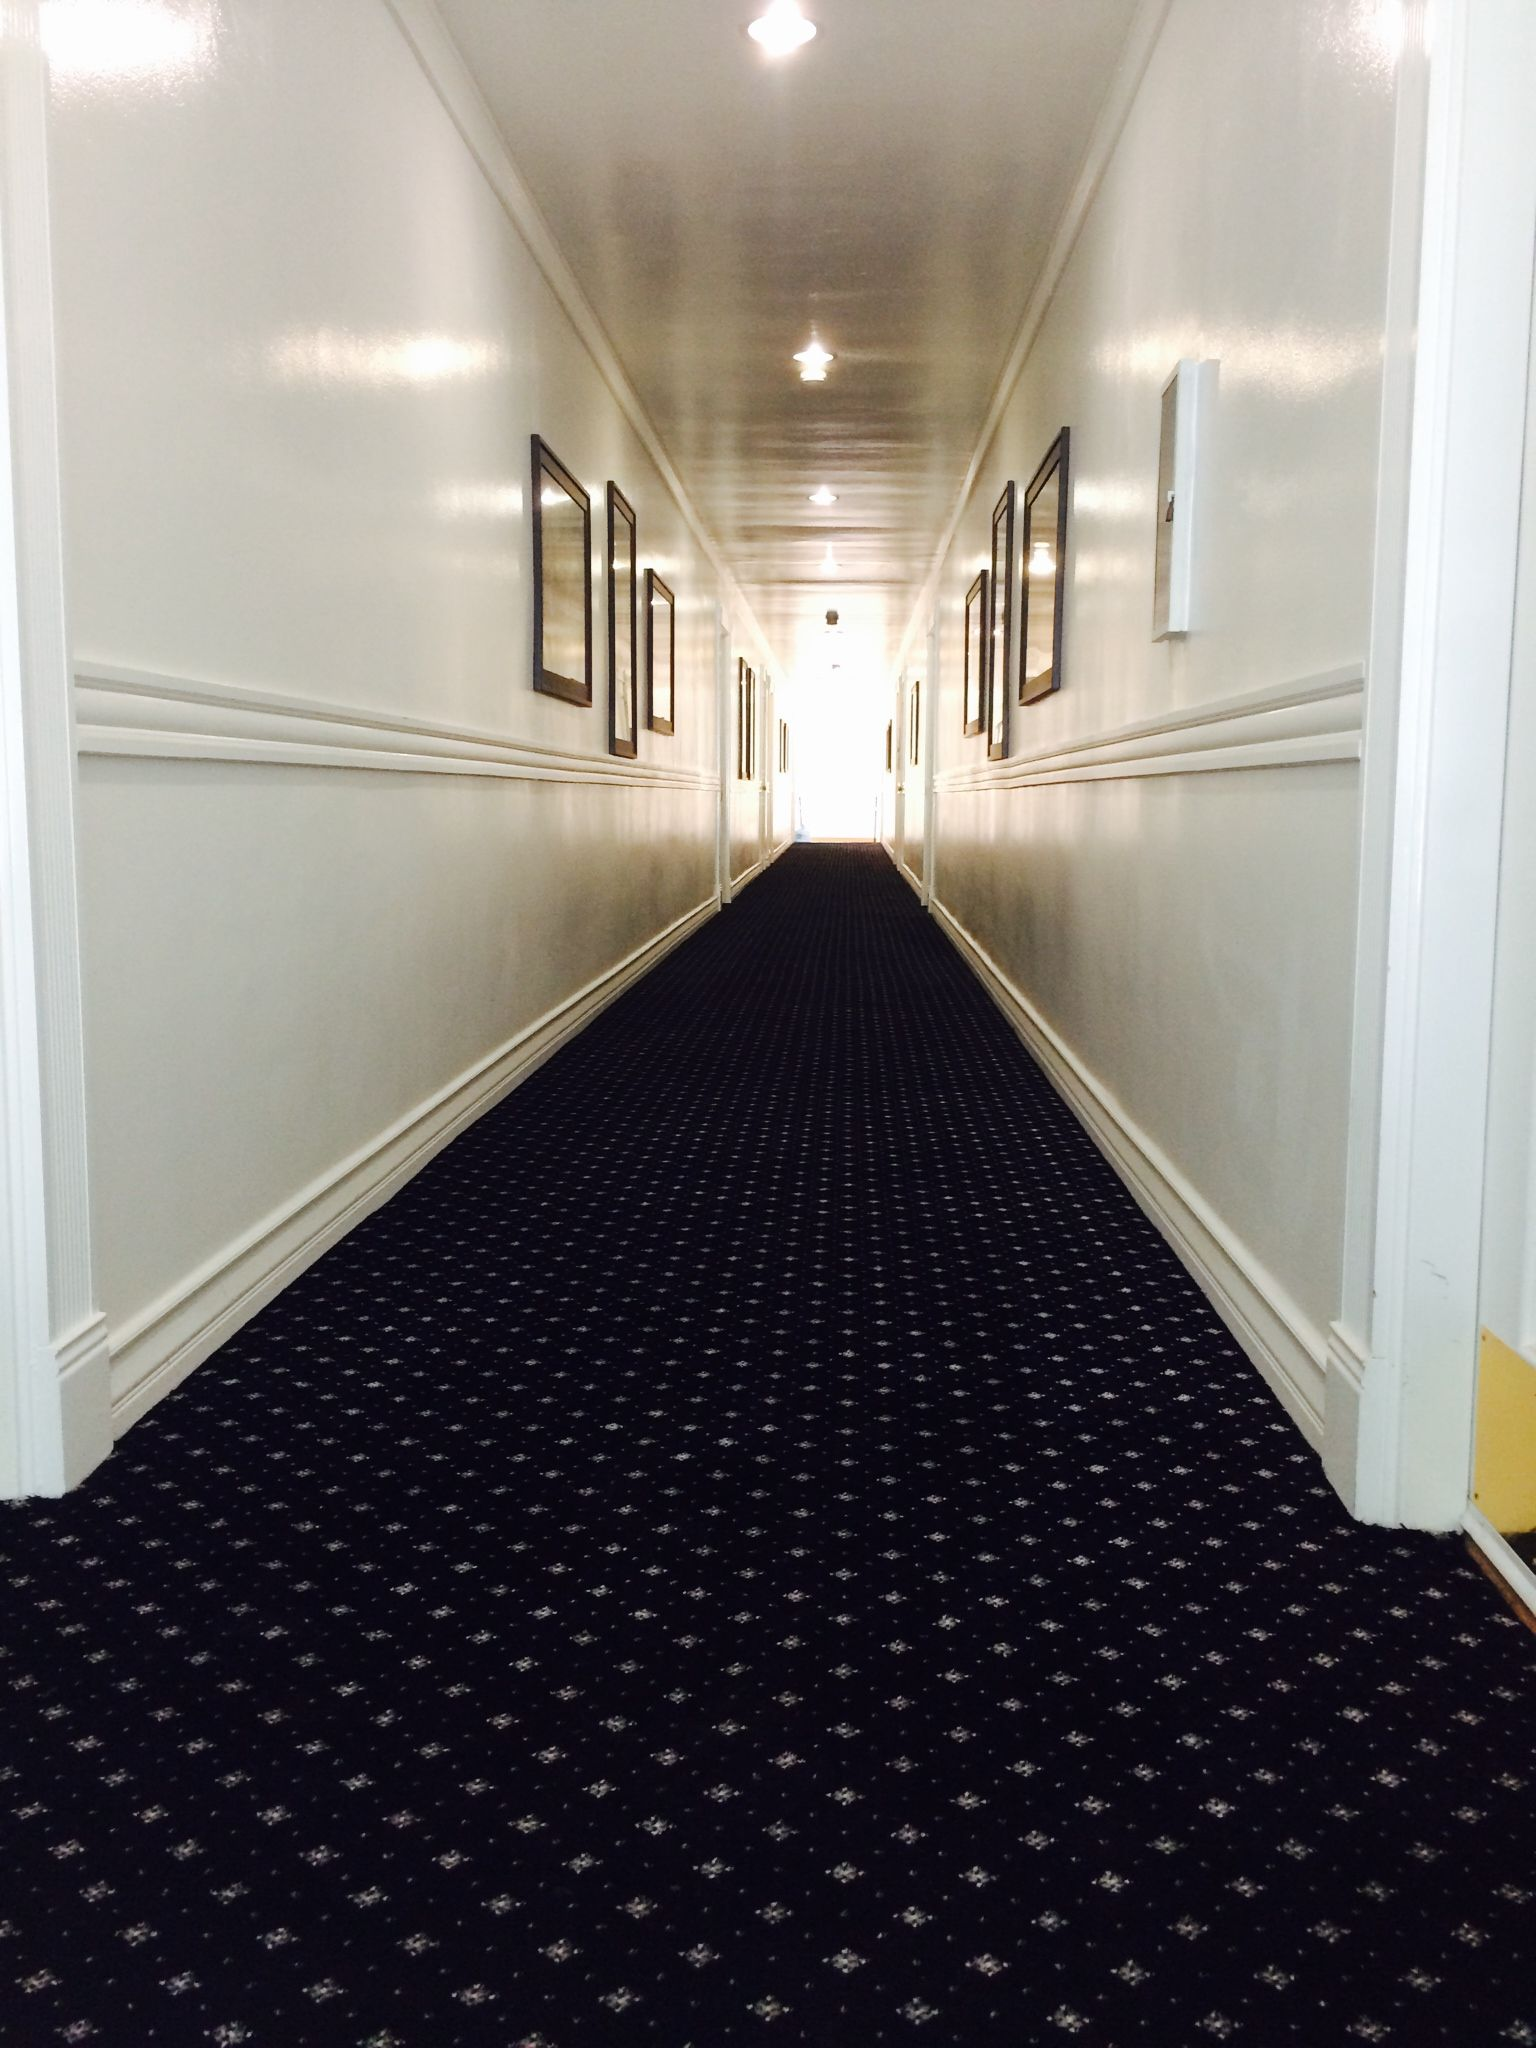 Commercial installations: Hotel hallway carpeting